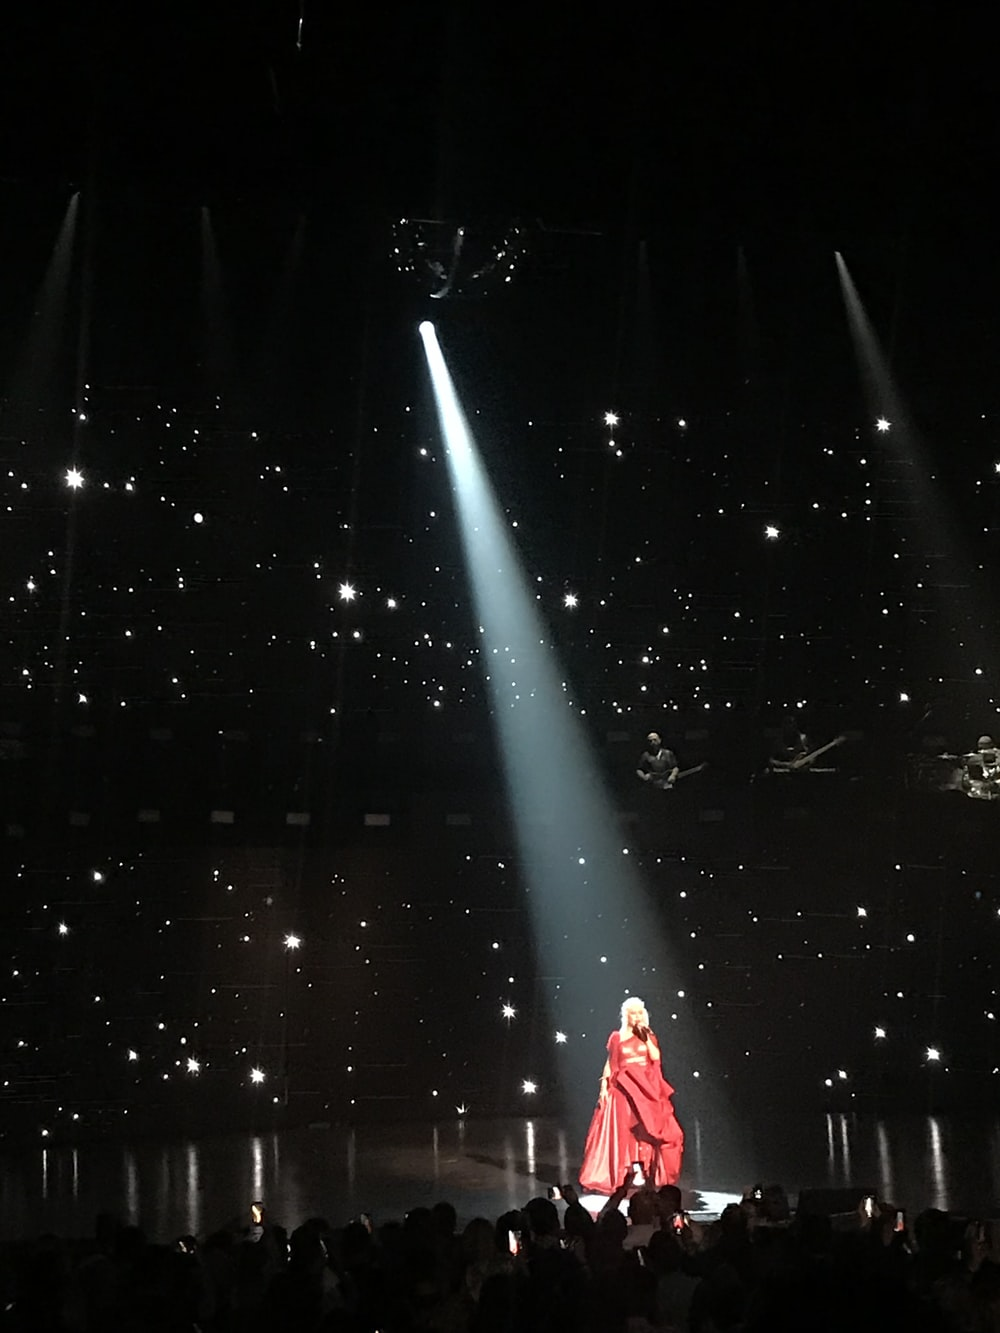 woman wearing red dress performing stage